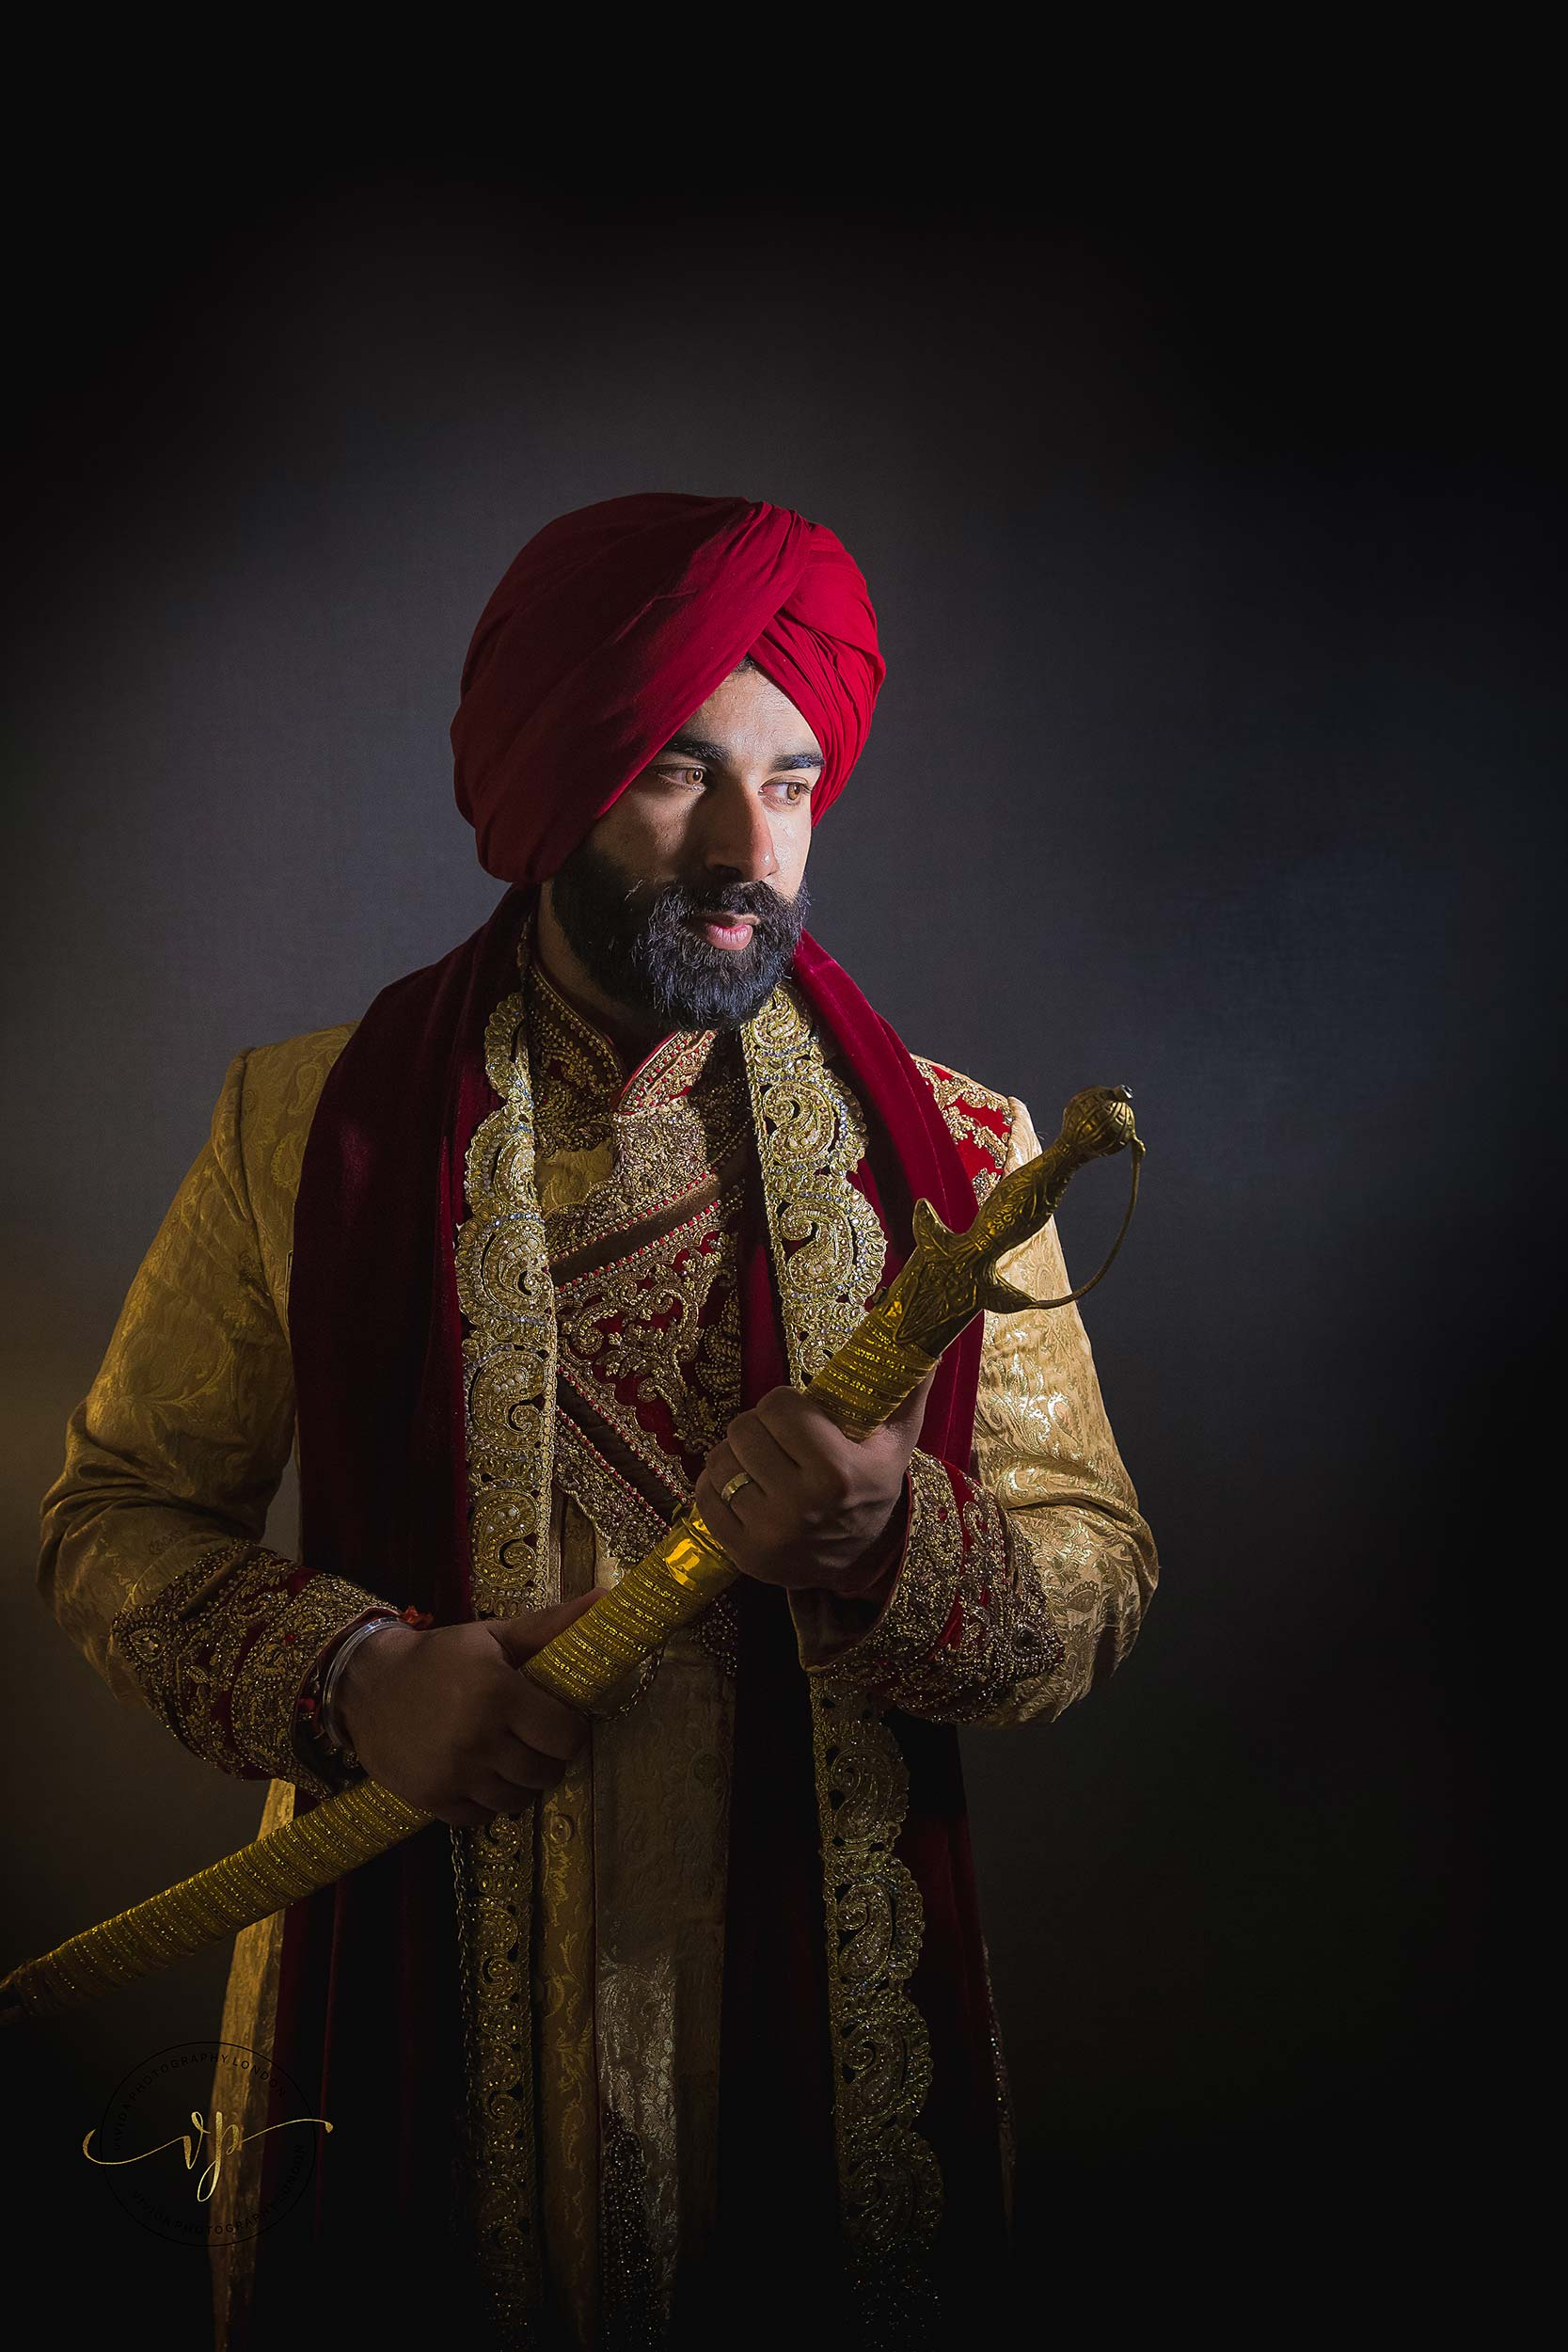 sikh+wedding+photography+london_26.jpg